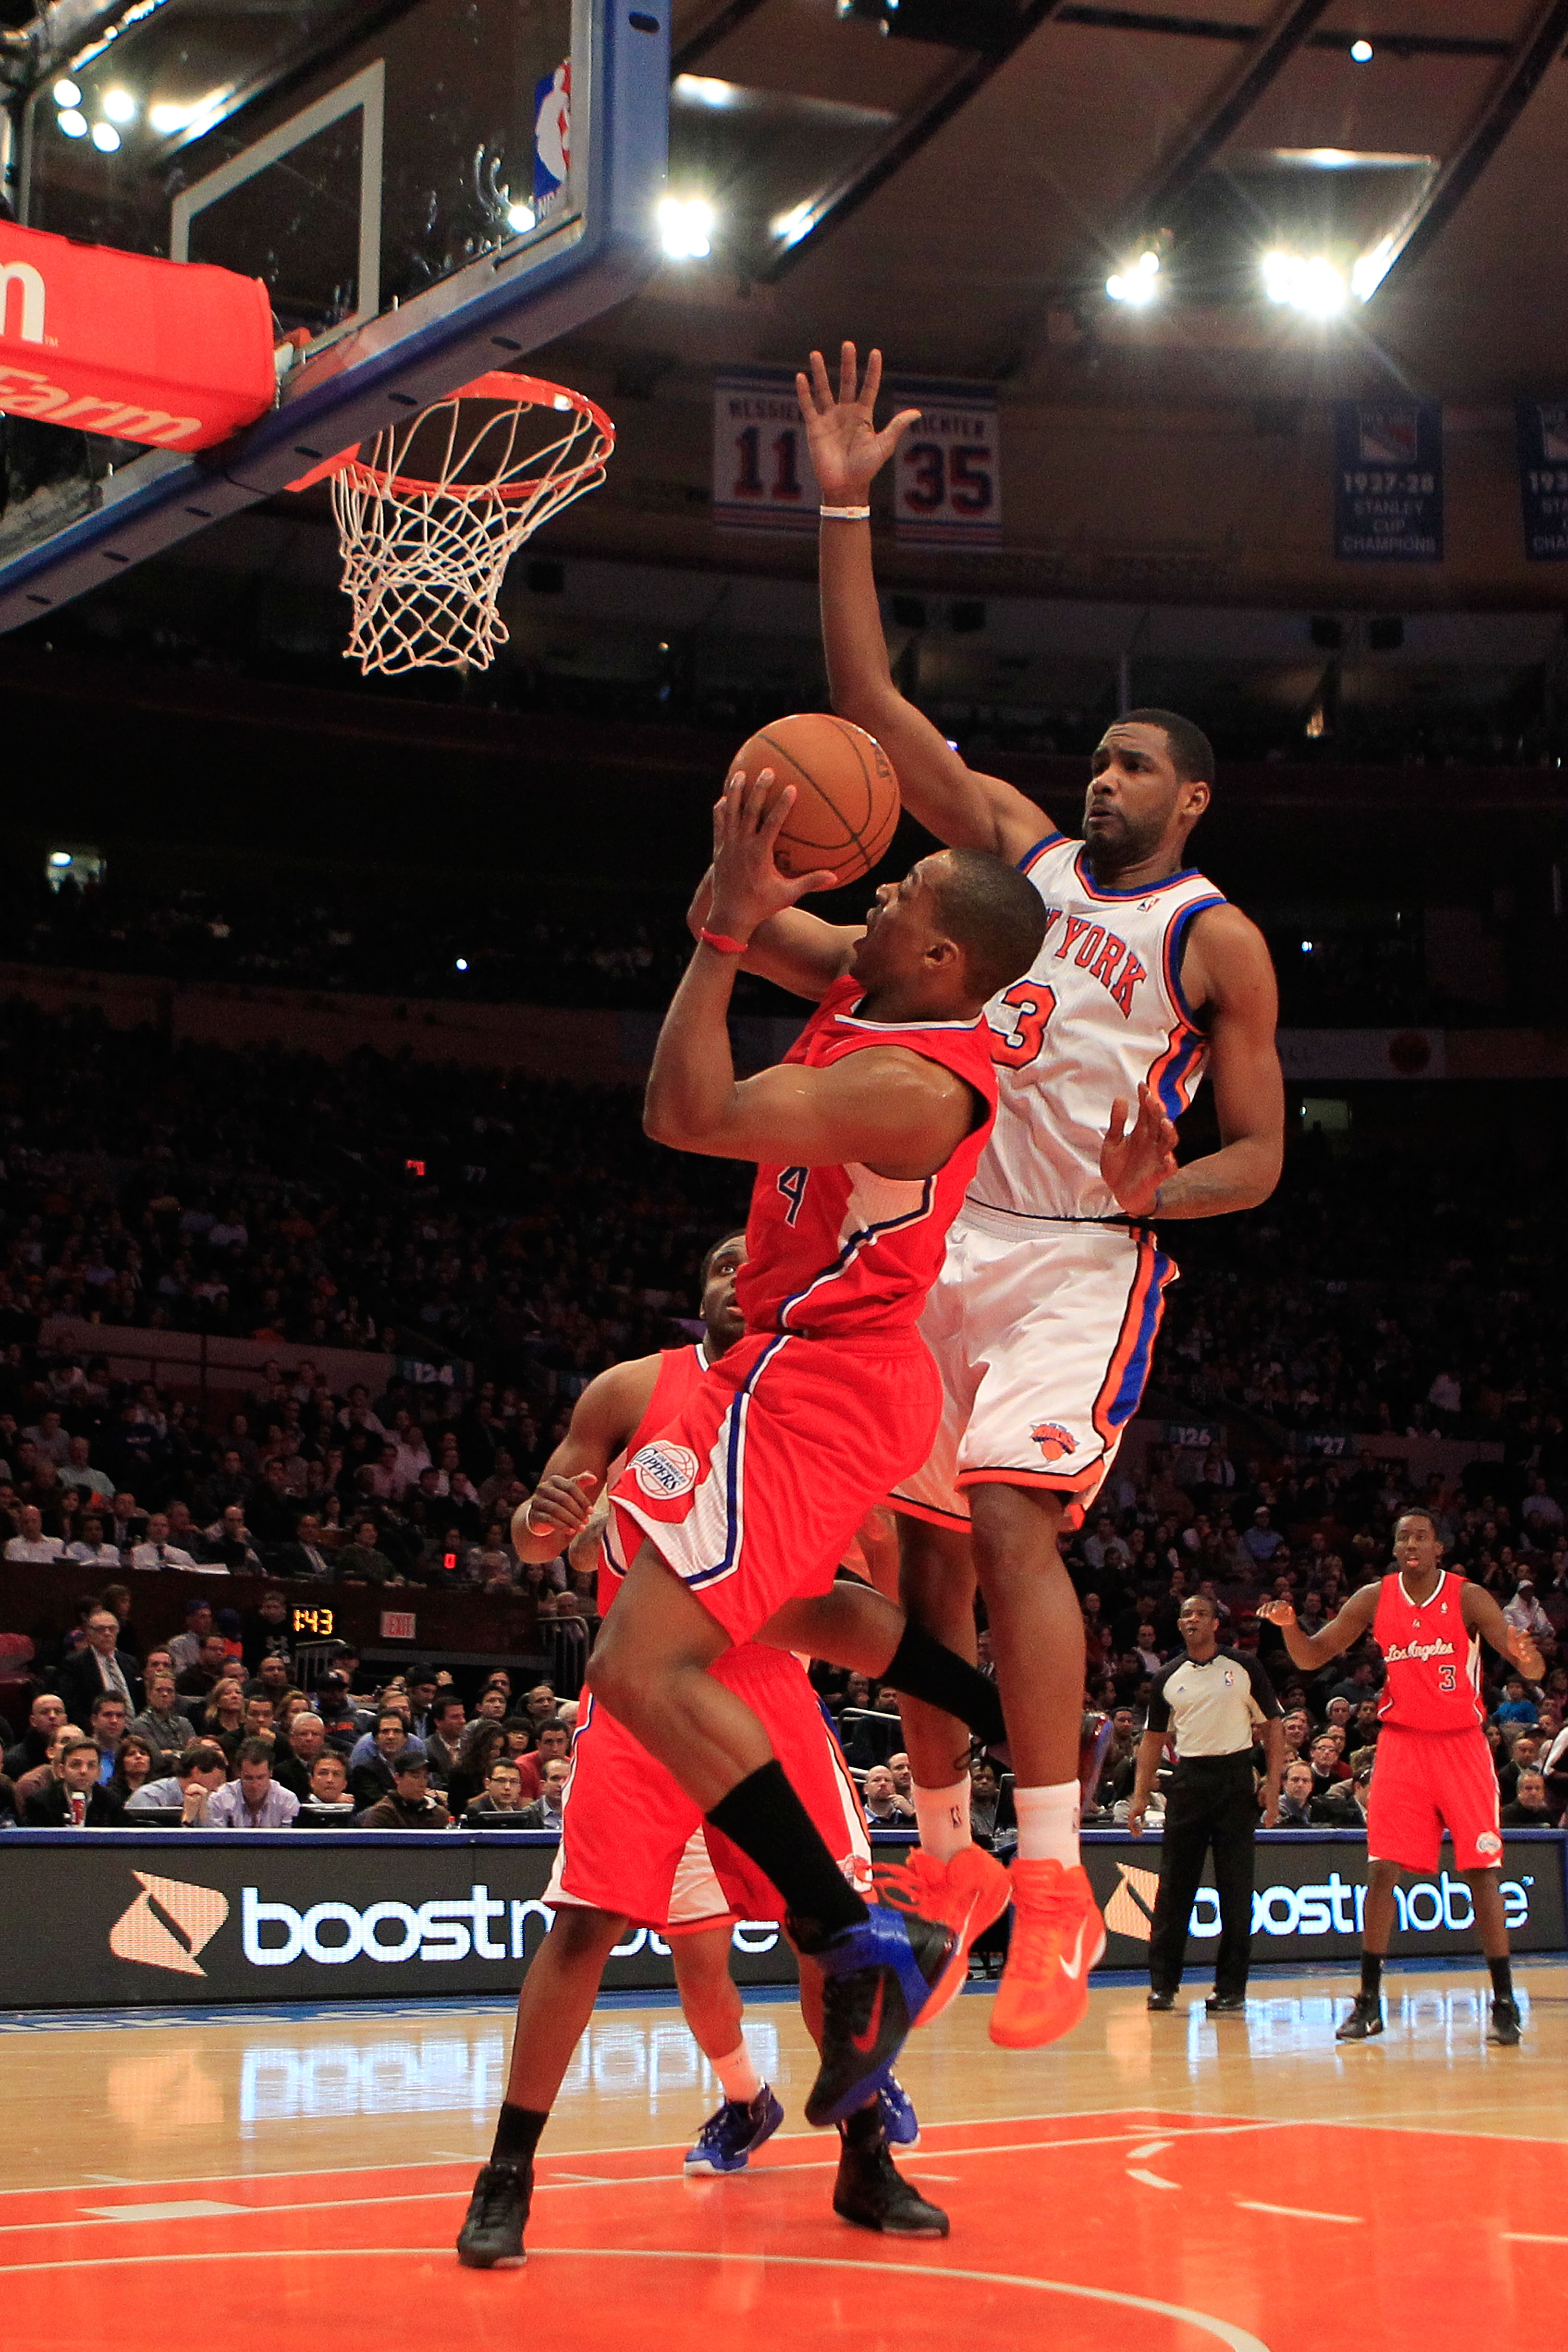 NEW YORK, NY - FEBRUARY 09:  Randy Foye #4 of the Los Angeles Clippers shoots the ball over Shawne Williams #3 of the New York Knicks at Madison Square Garden on February 9, 2011 in New York City. NOTE TO USER: User expressly acknowledges and agrees that,